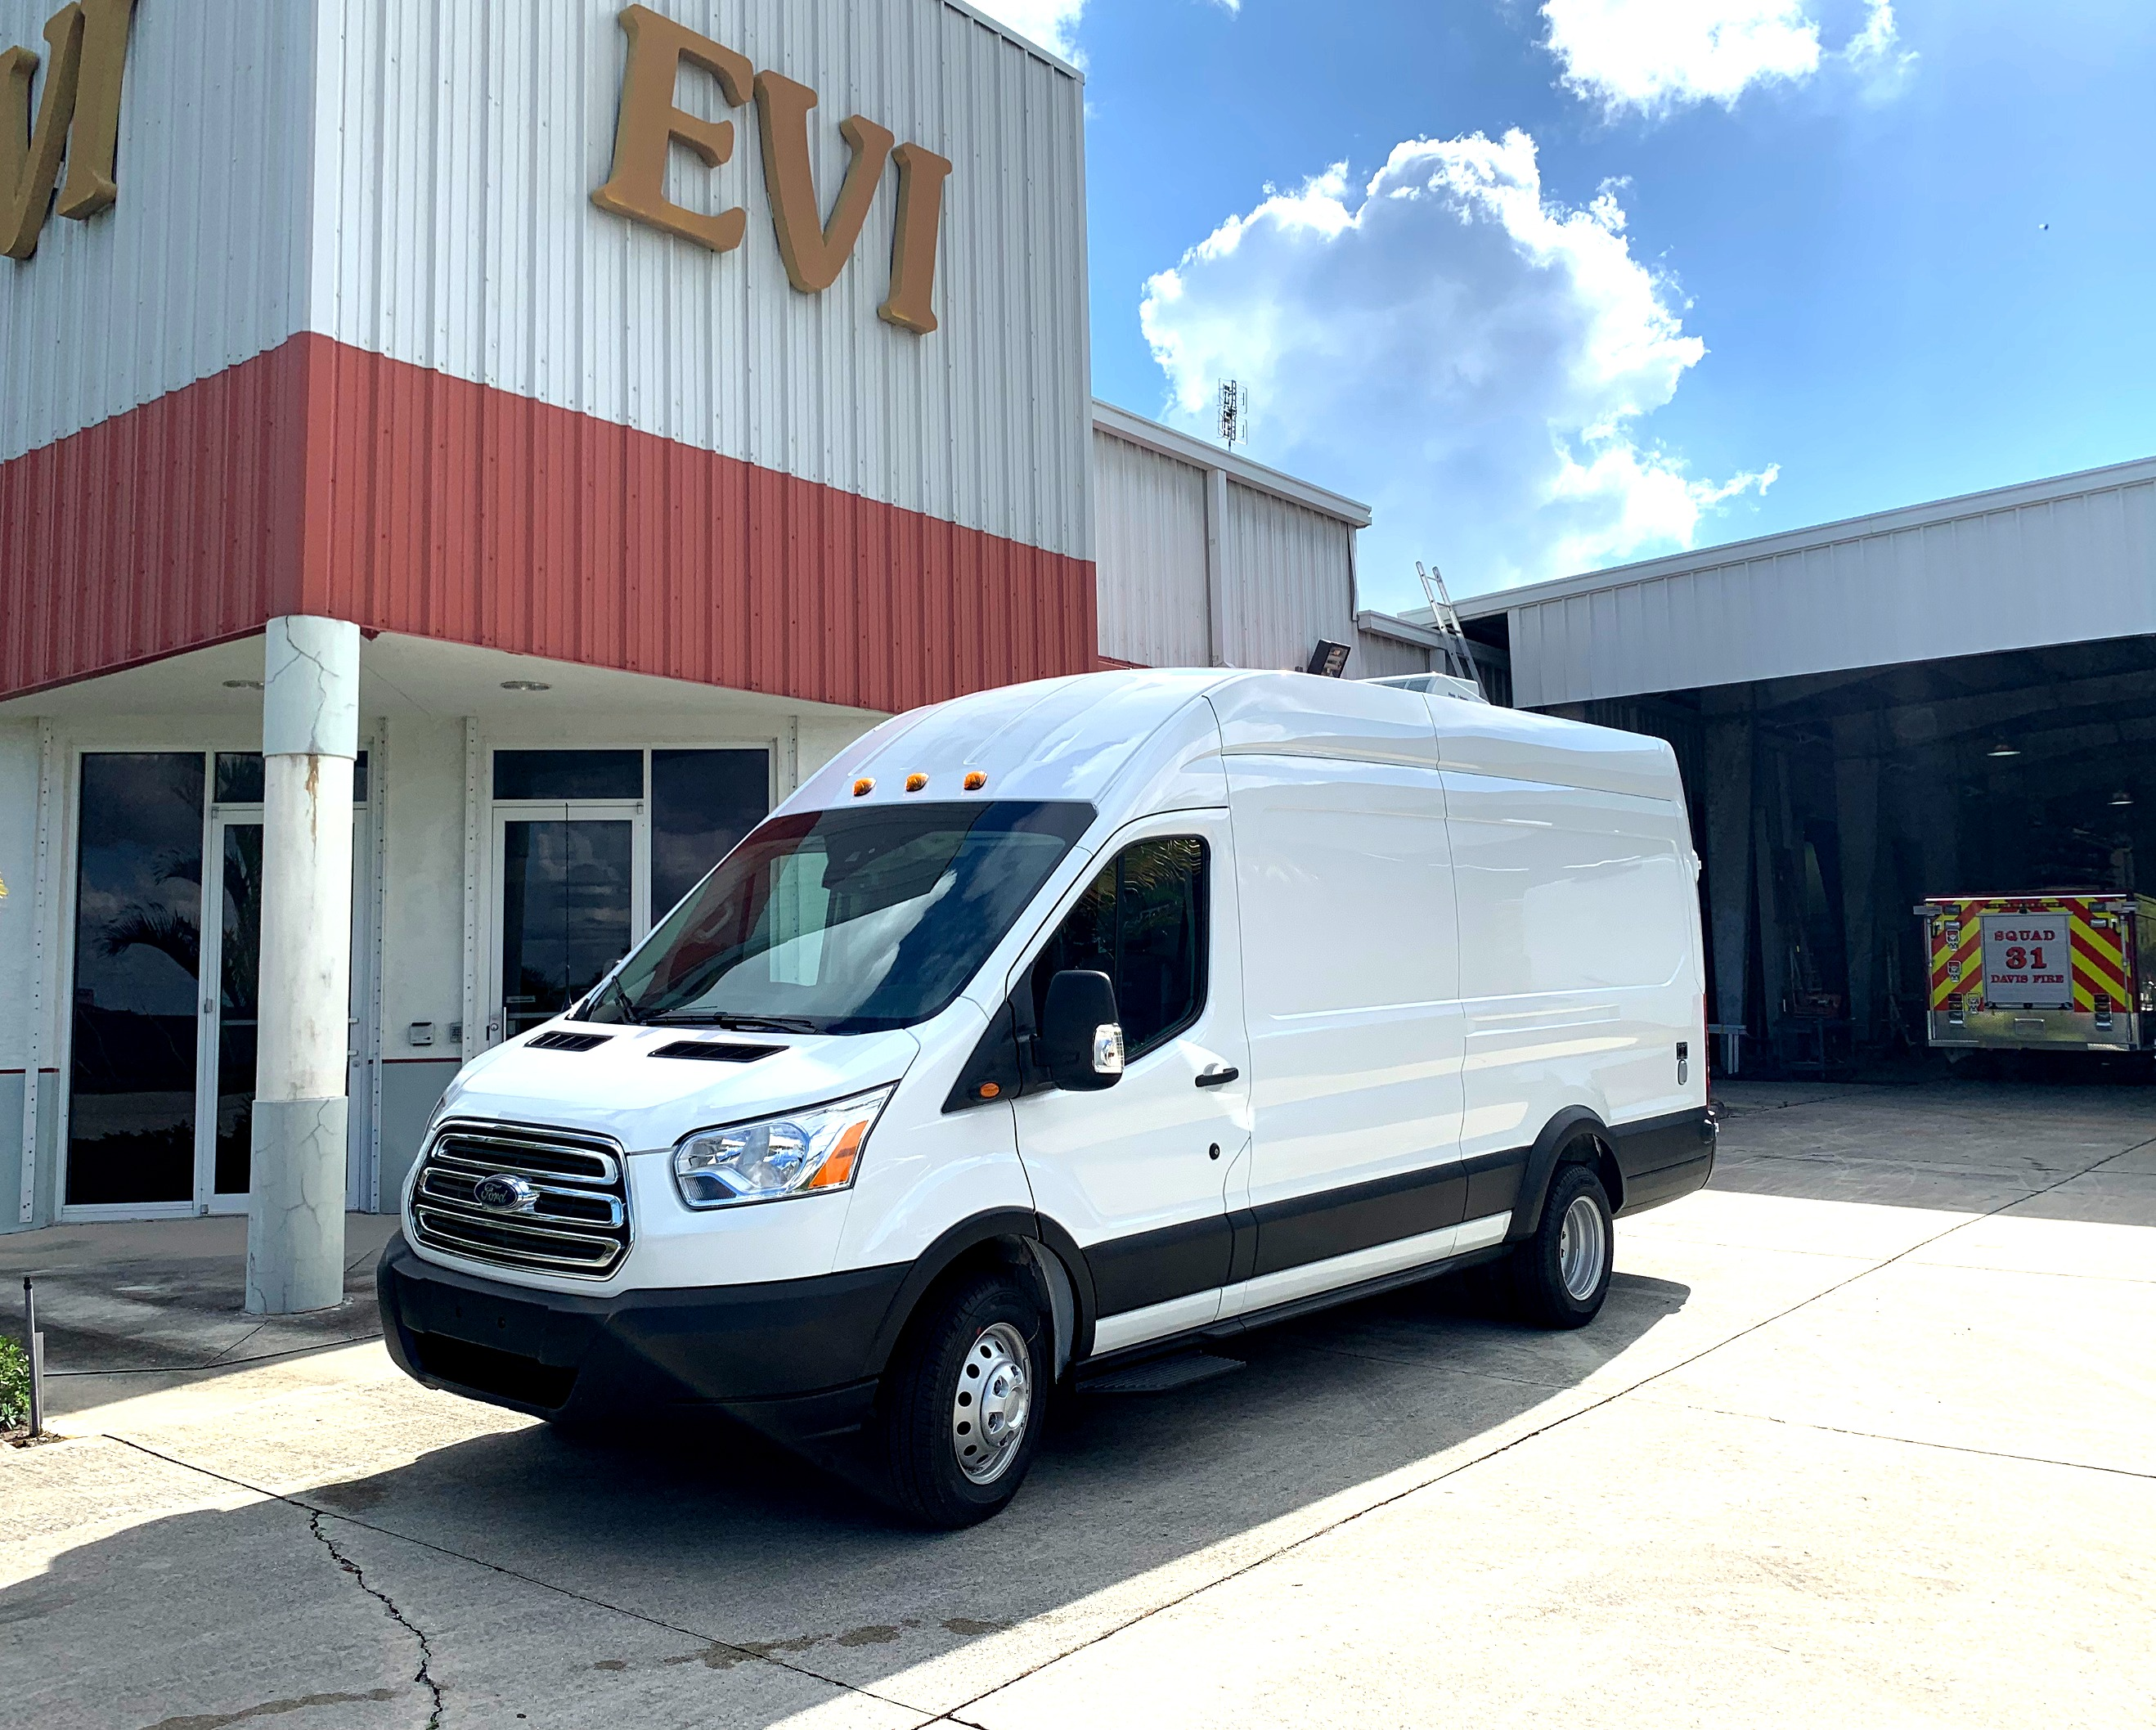 evi custom swat van transport